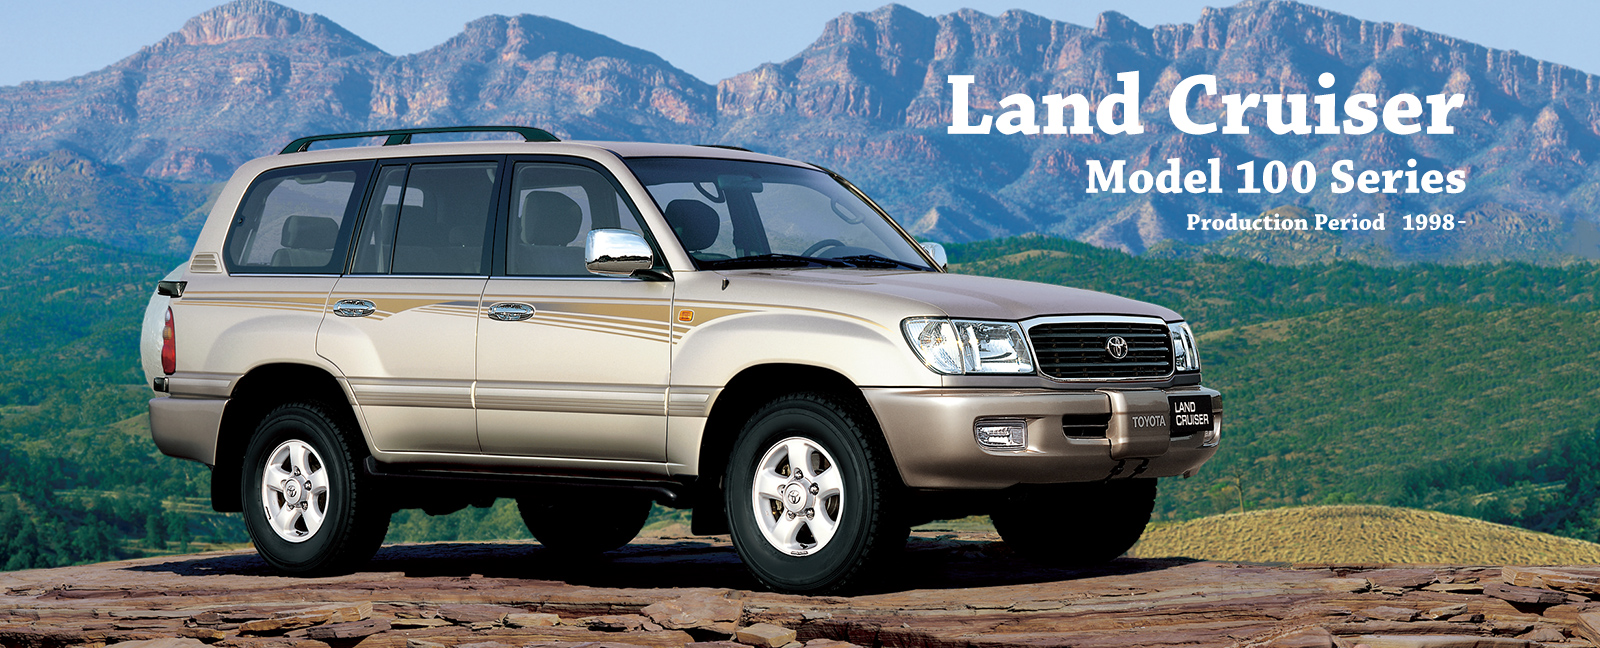 Toyota Global Site Land Cruiser Model 100 Series 01